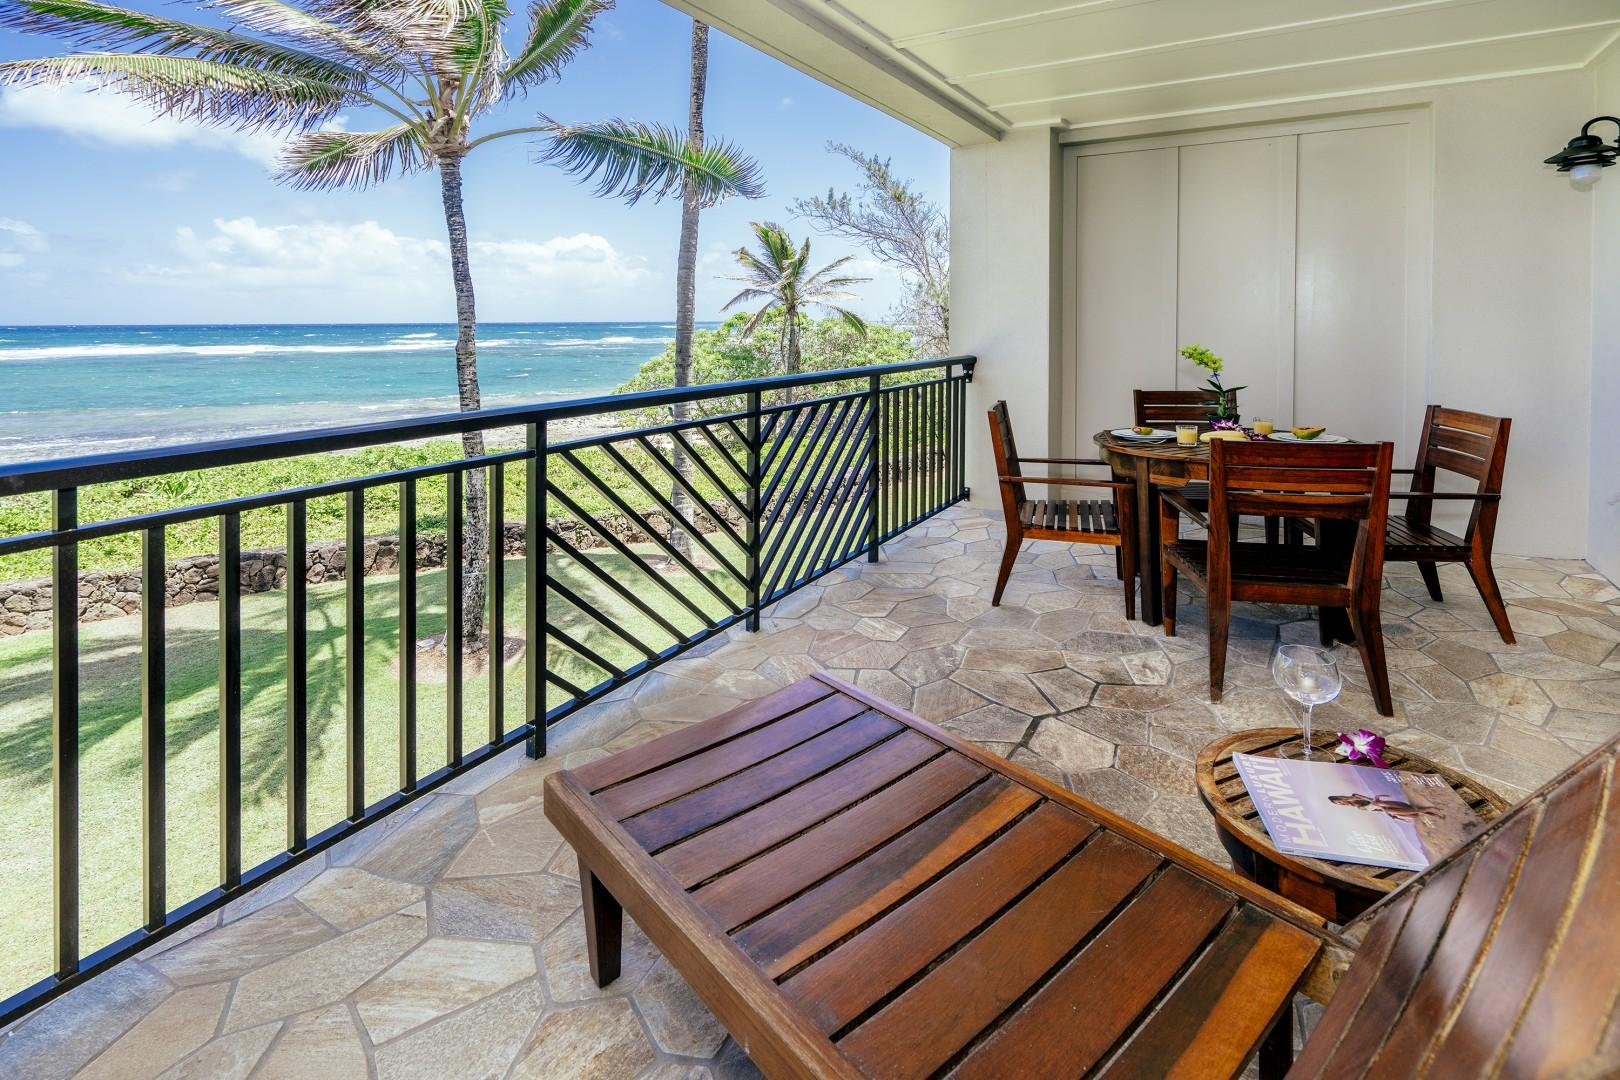 Serene ocean view from the lanai.